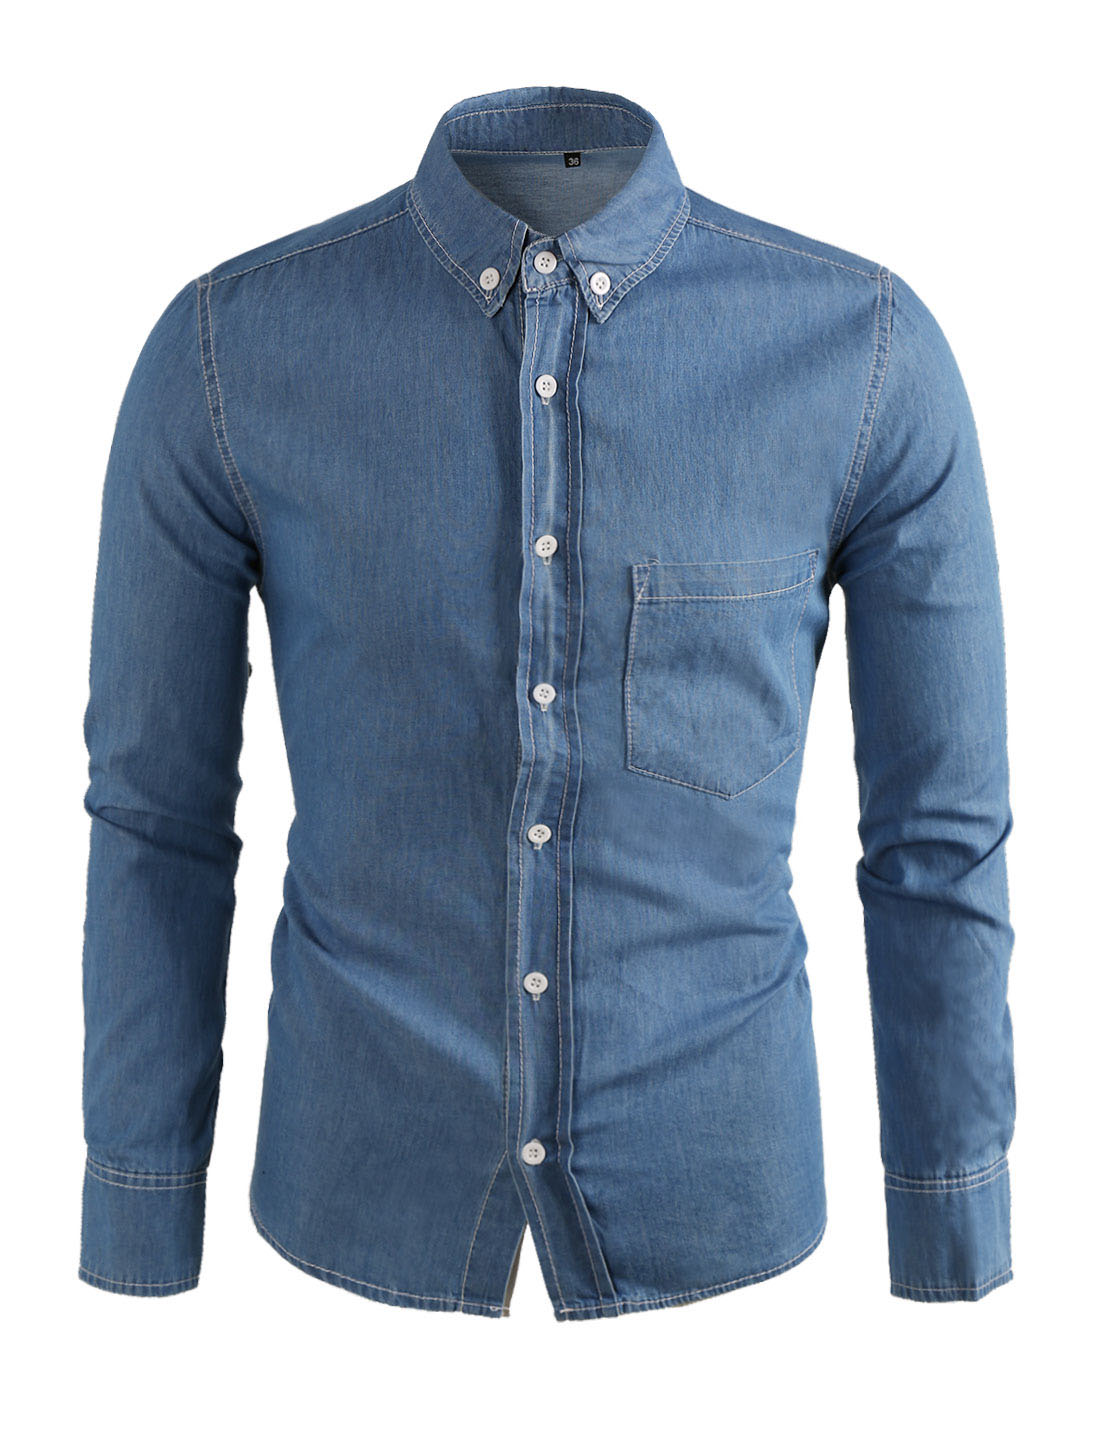 Men Long Sleeves Single Breasted Denim Button Down Shirt Blue S